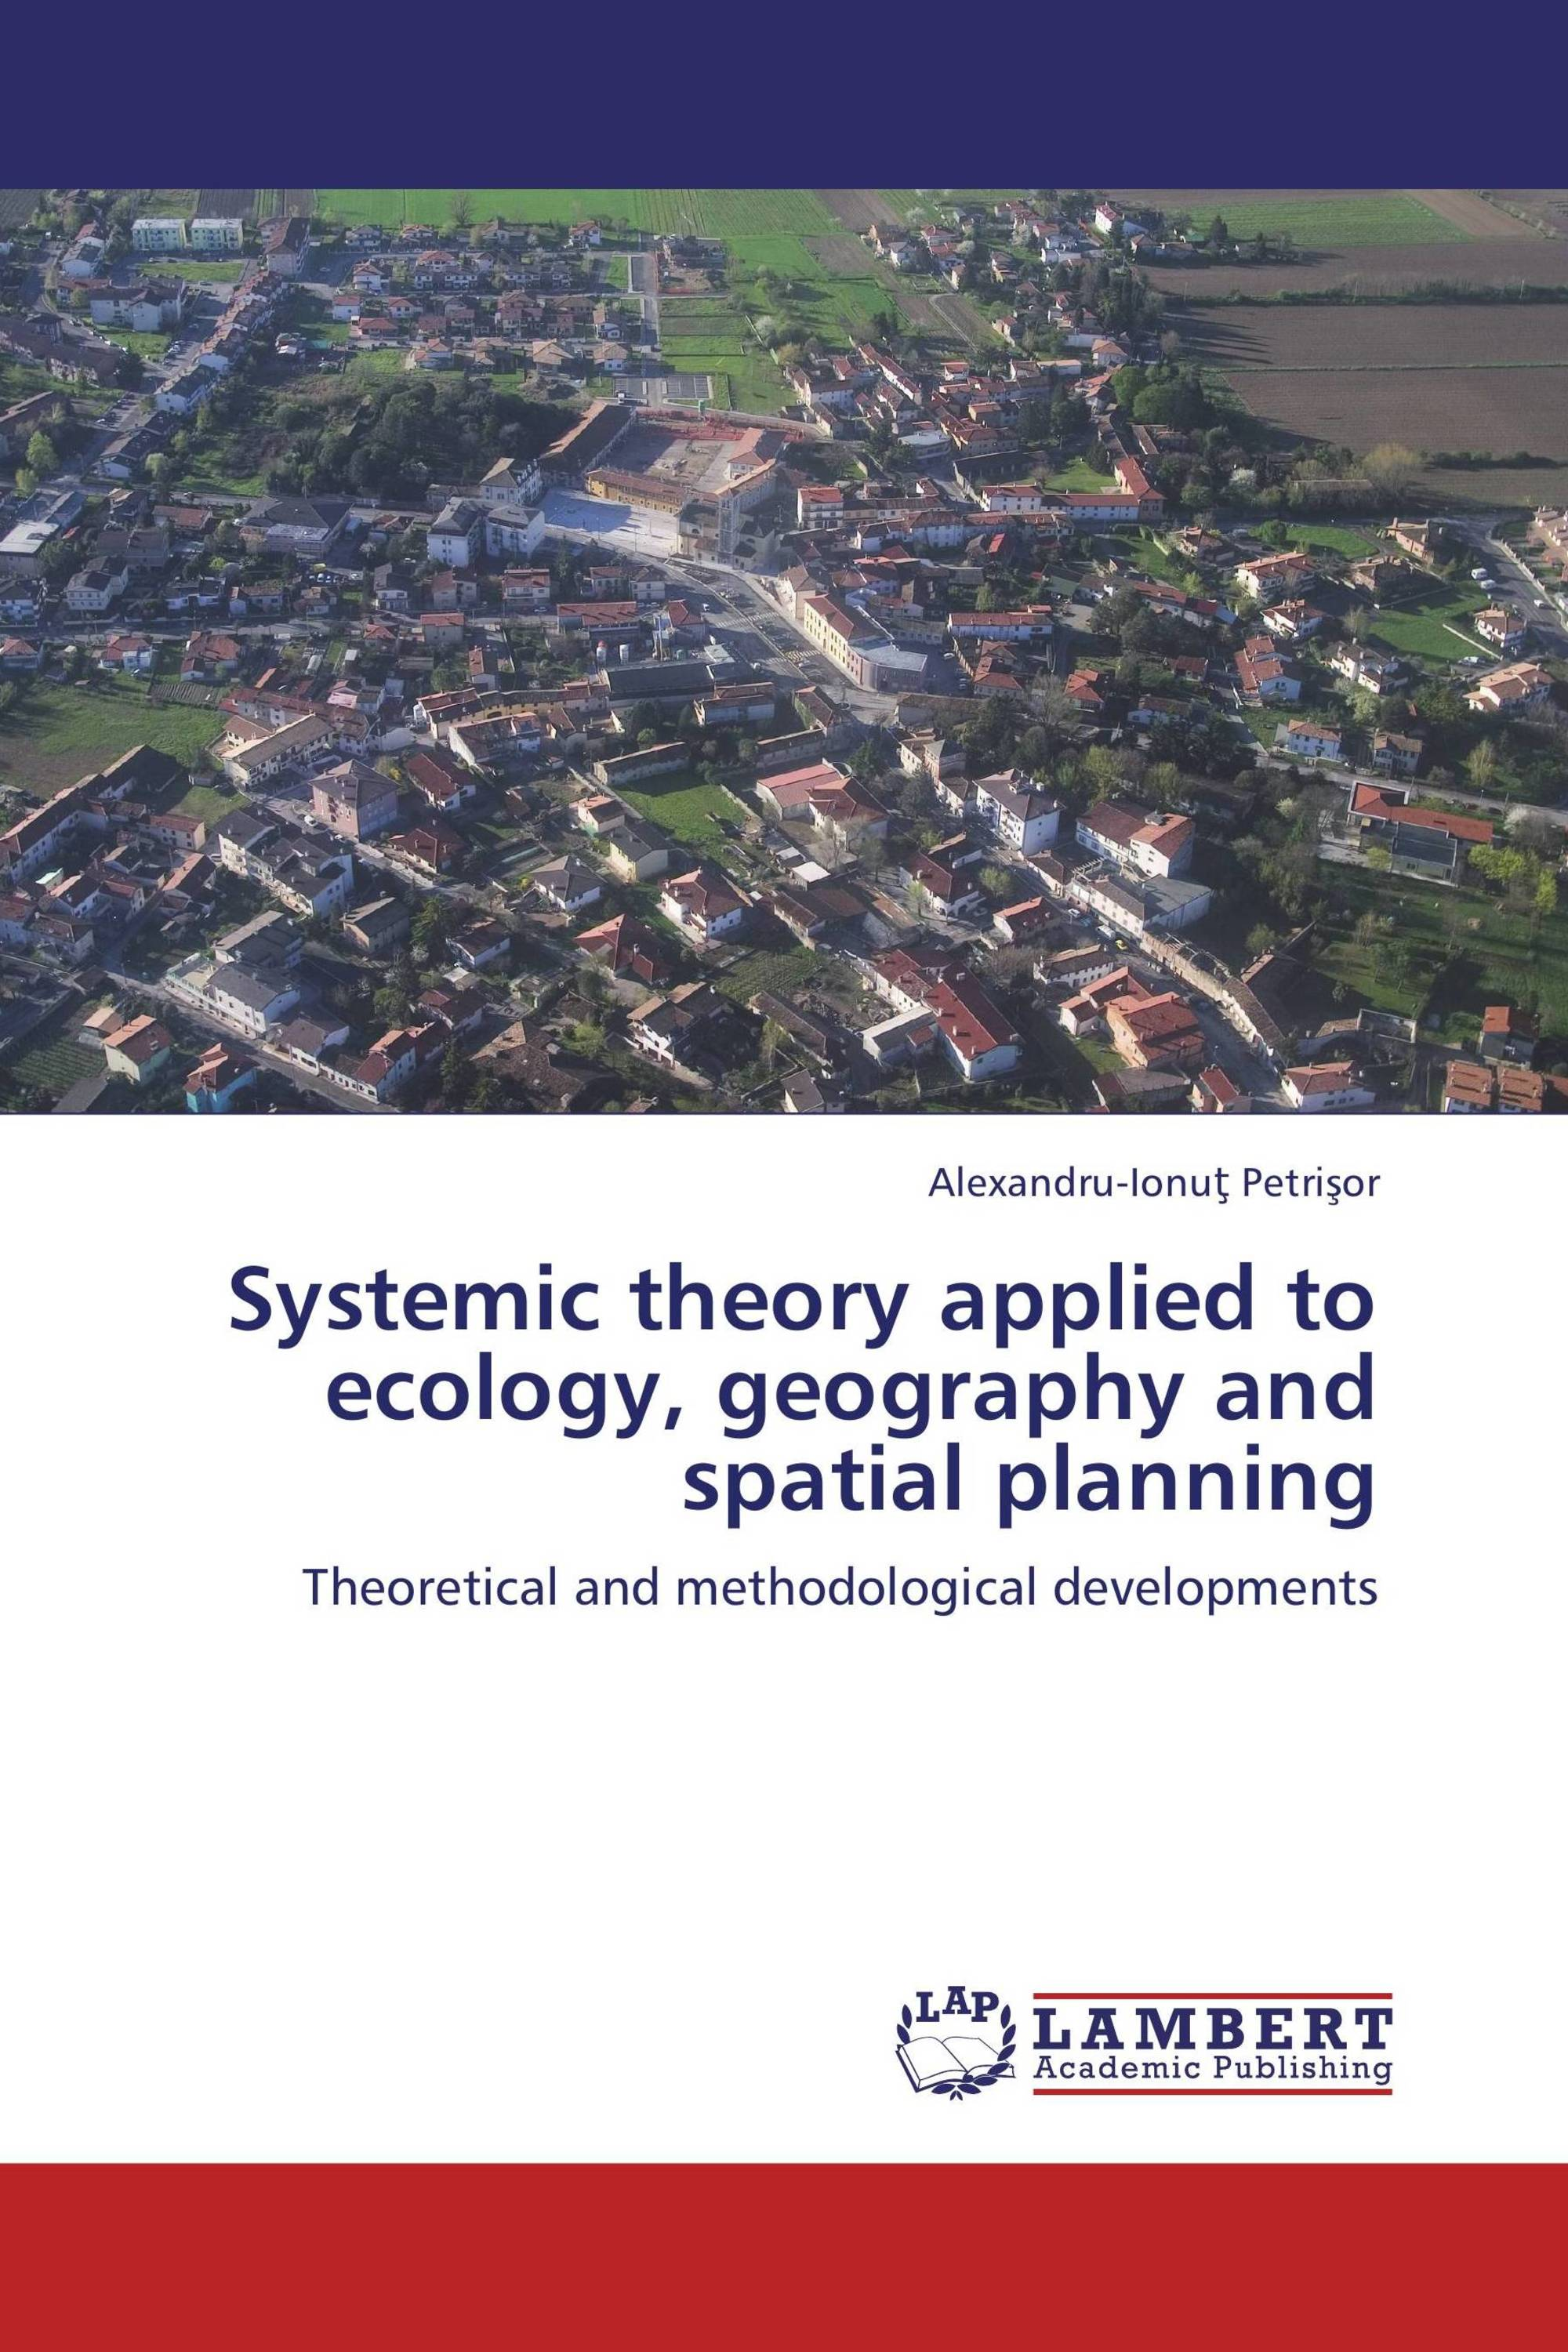 Systemic theory applied to ecology, geography and spatial planning